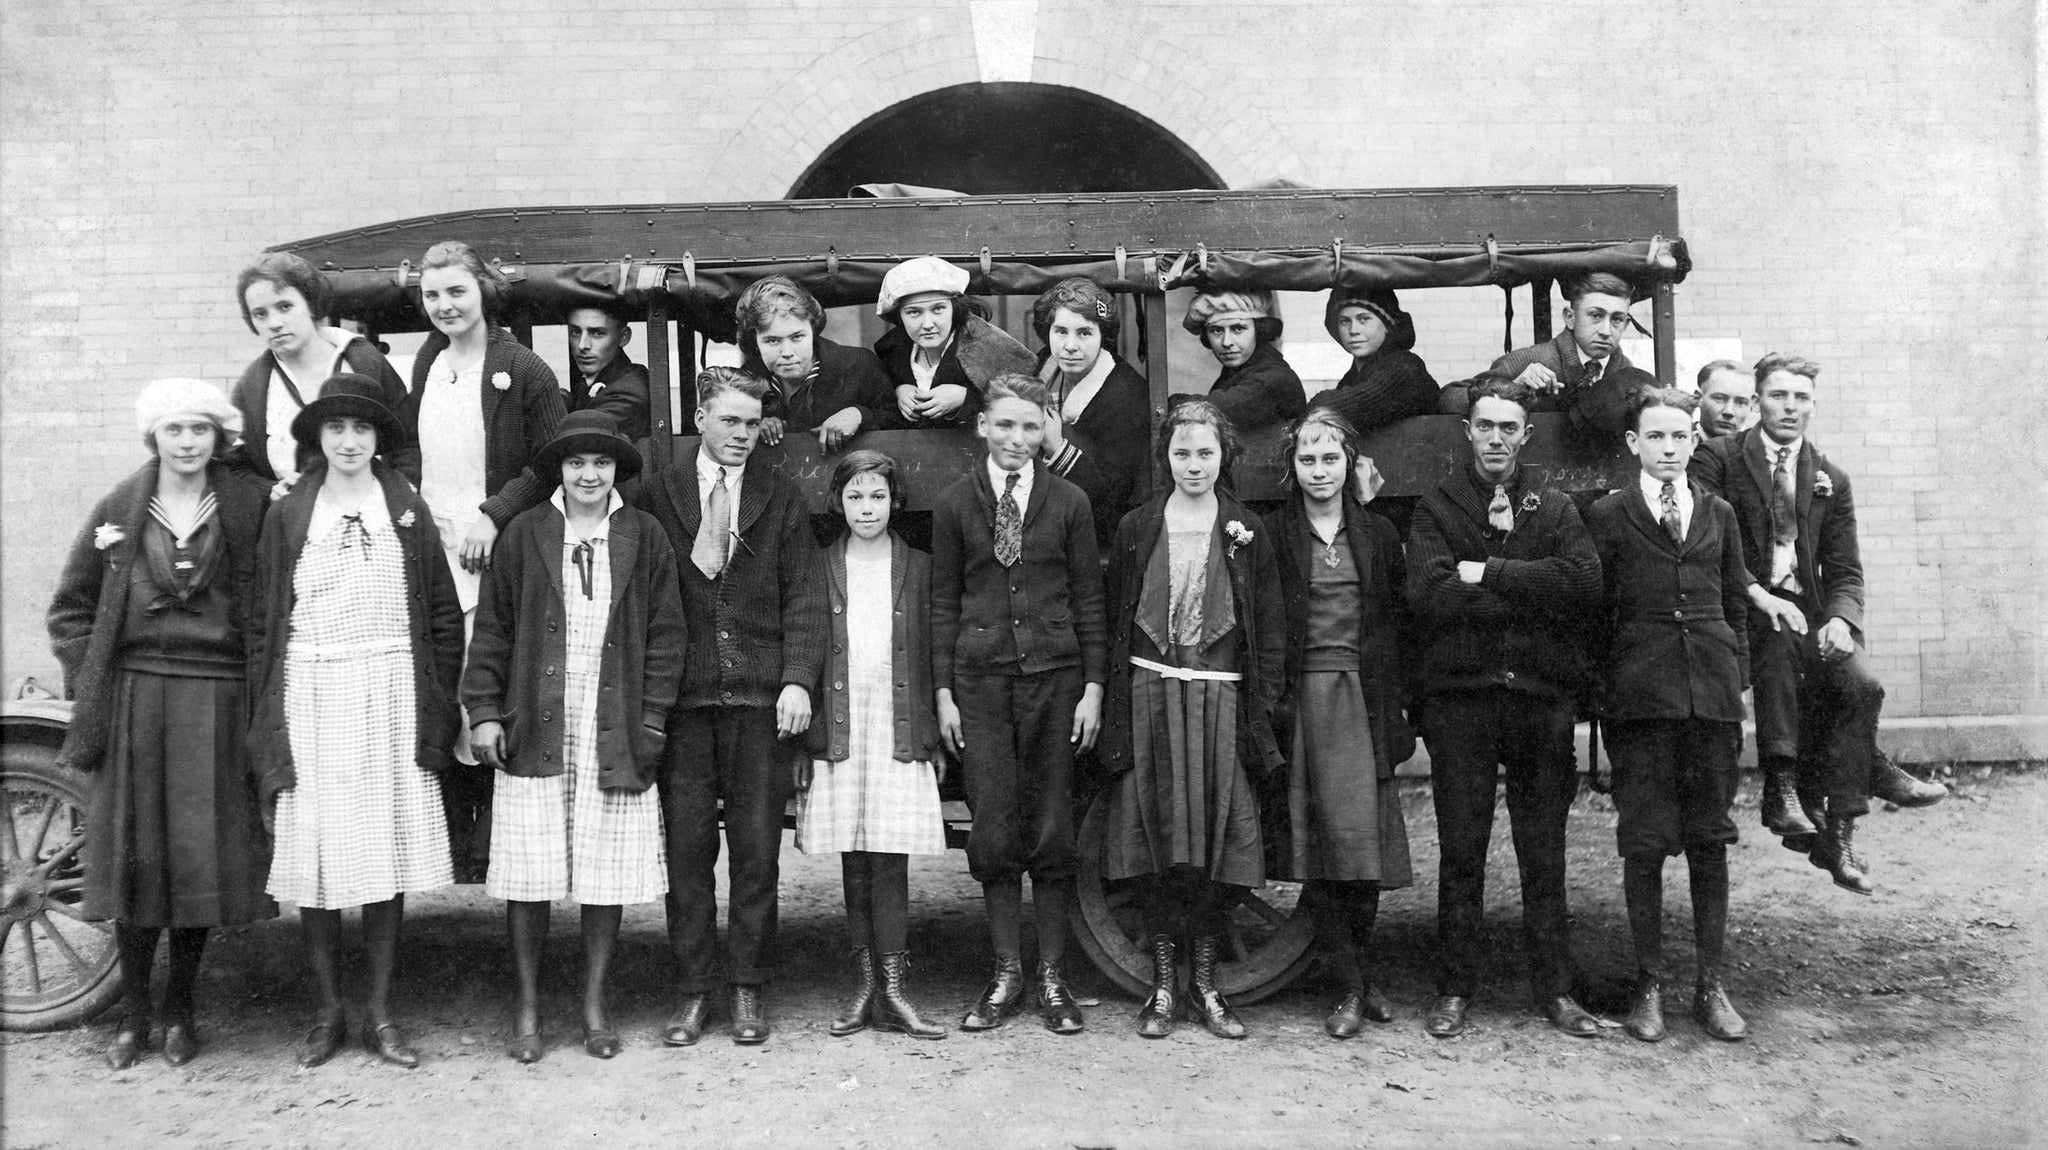 Students with the first school bus in Cleveland County, circa 1920. The bus, driven by Yates Spangler, carried students from the Double Shoals community to Piedmont School in Lawndale. -- Courtesy of Theresa Lowe, Lawndale Museum